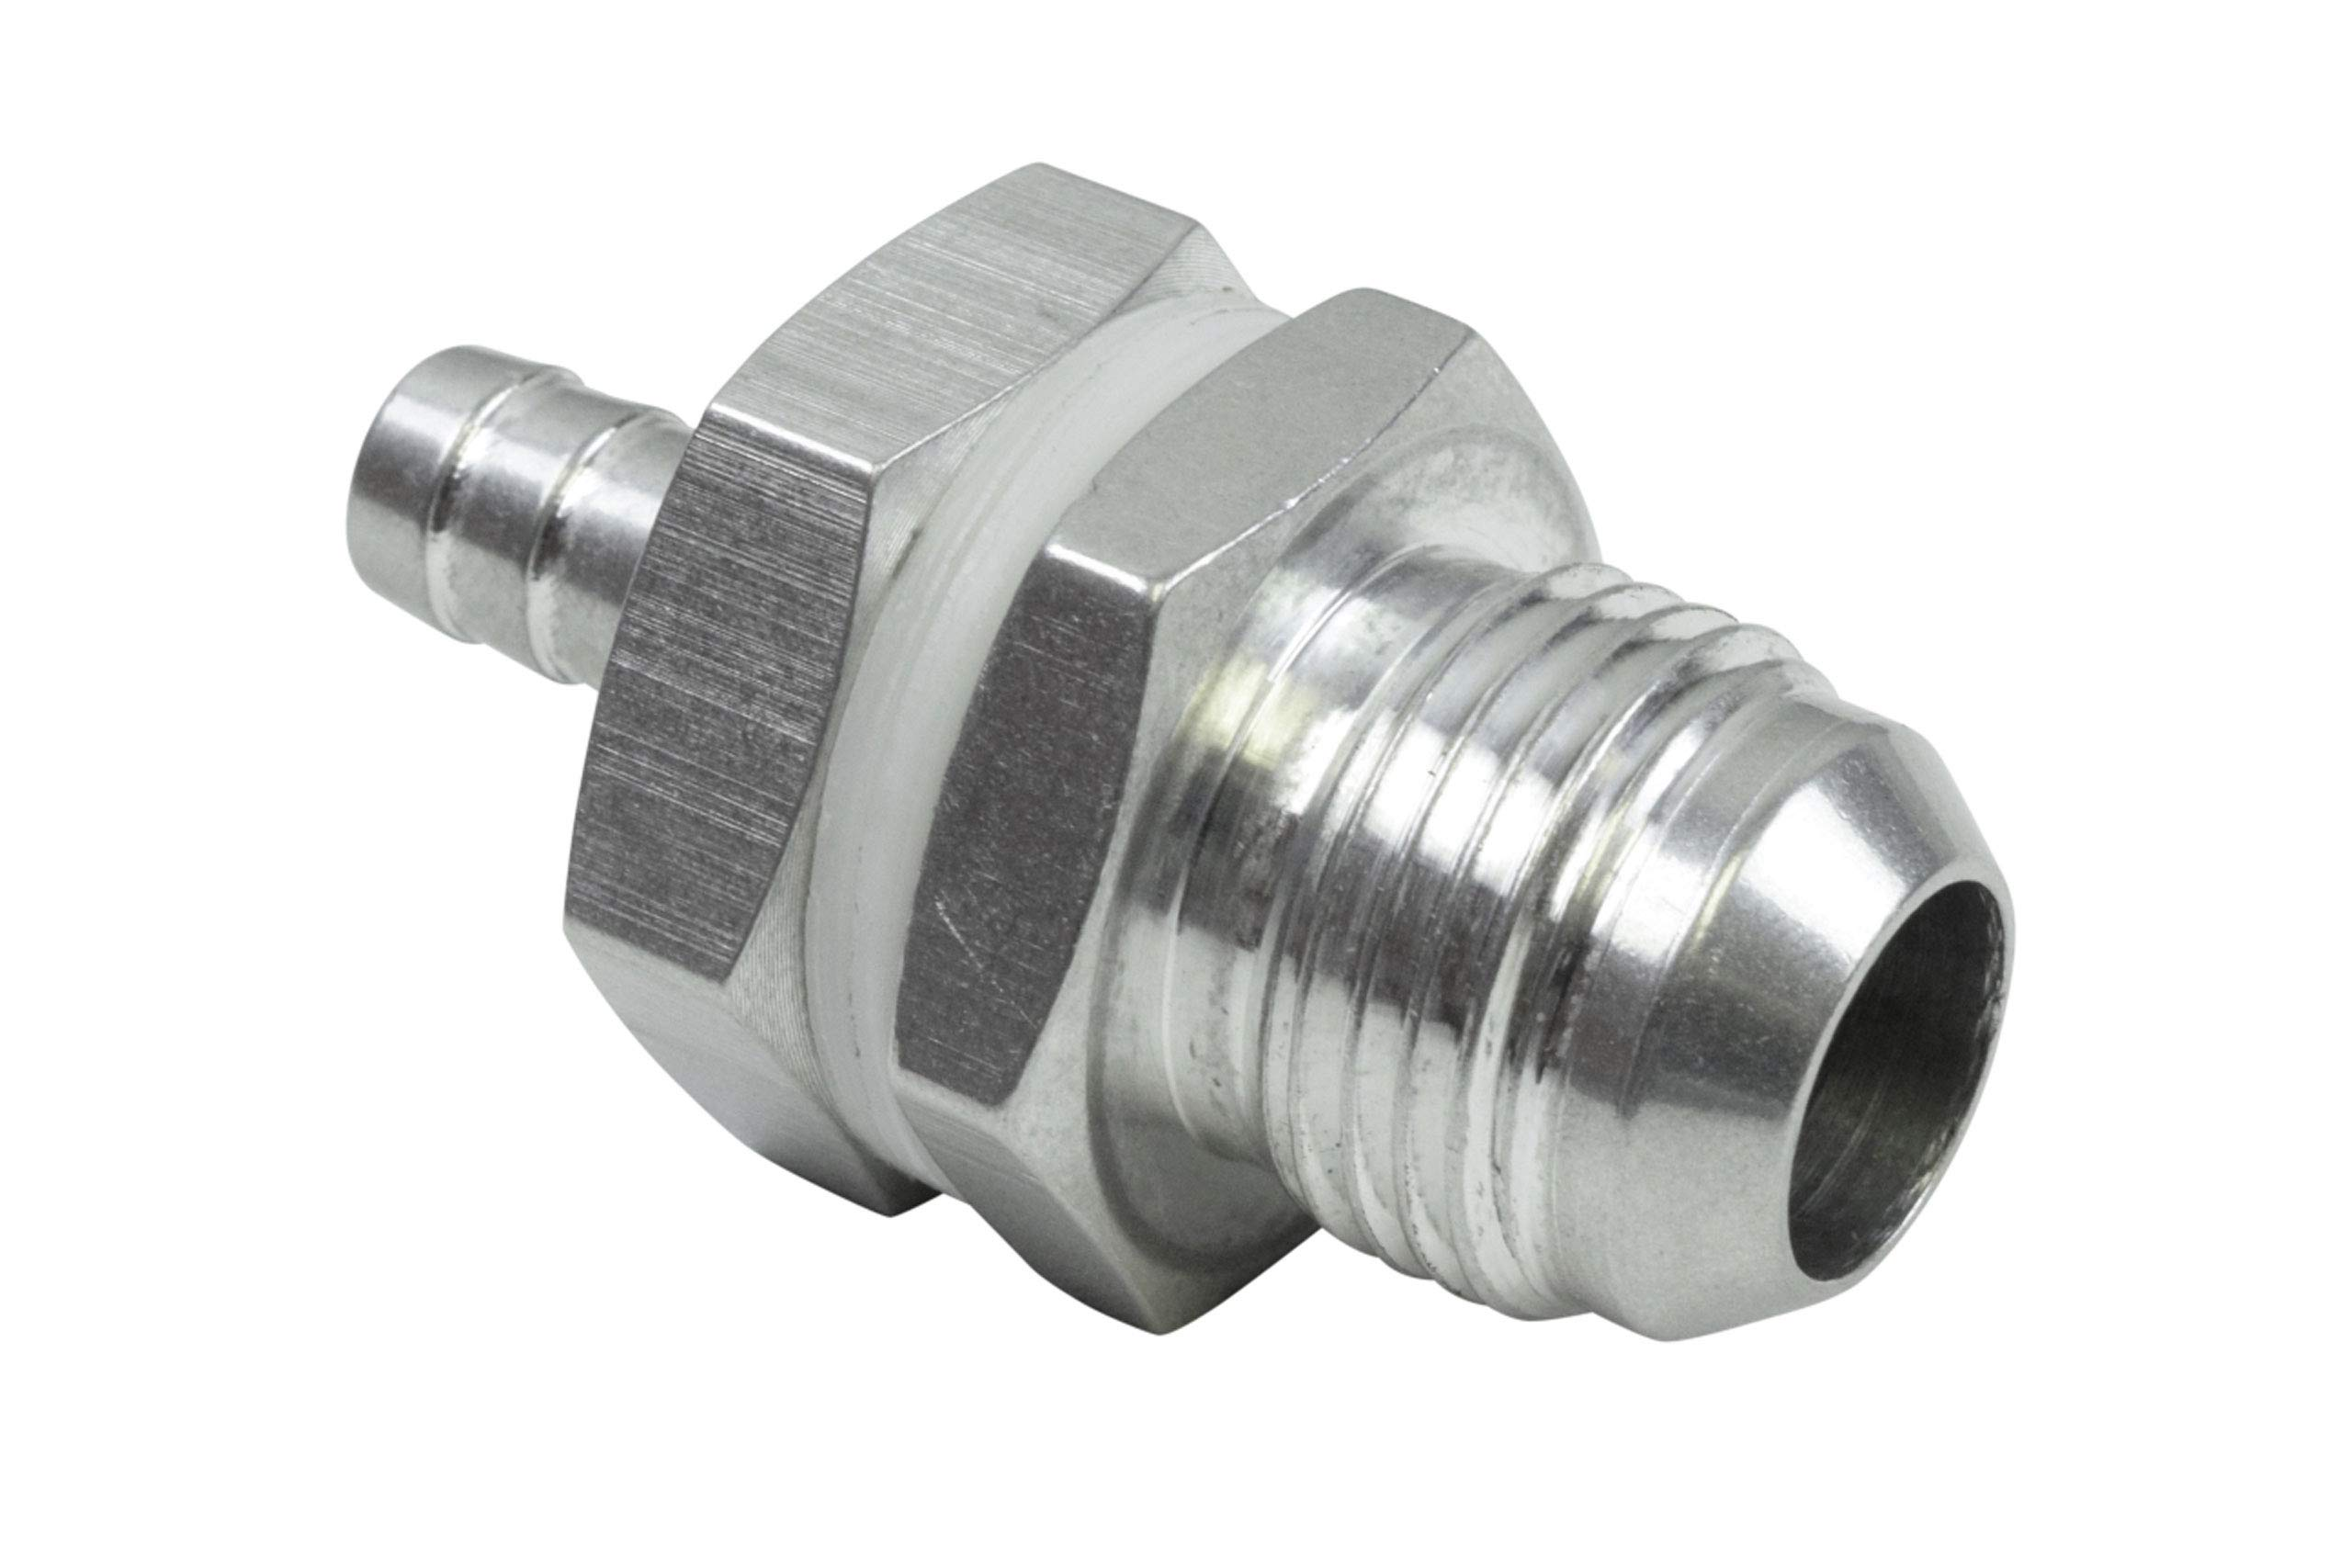 """ICT Billet -10AN Straight to 3/8"""" Hose Barb Double Fuel Pump Tank Fitting Bulkhead Adapter Fitting Hose Thread Fuel Oil Gas Coolant Connector Pipe End Plumbing Port Fluid Aluminum AN861-10-37A"""